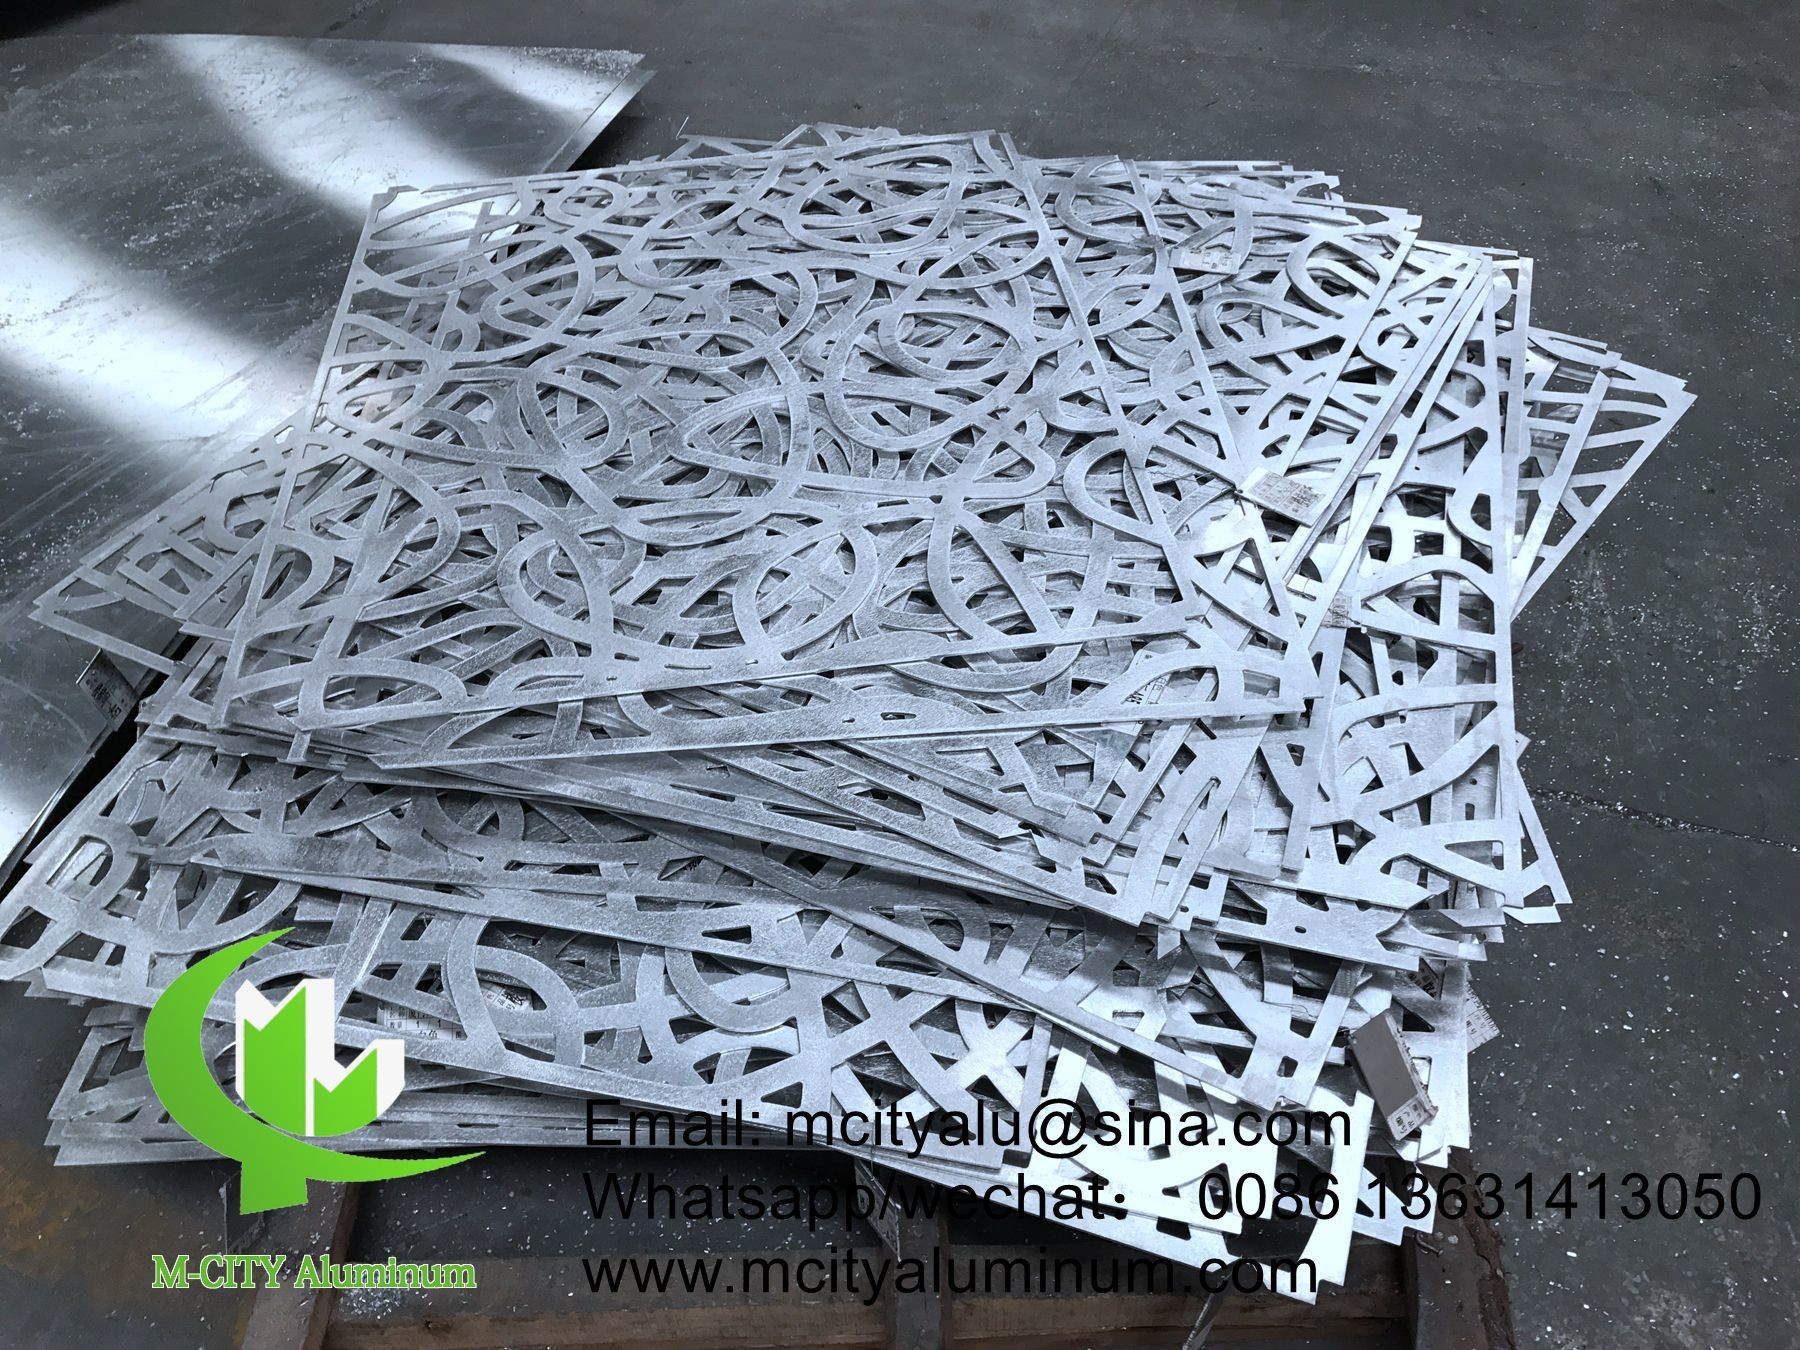 Can You Powder Coat Aluminum >> Laser Cut Sheet Powder Coated Aluminum Cnc Laser Cut